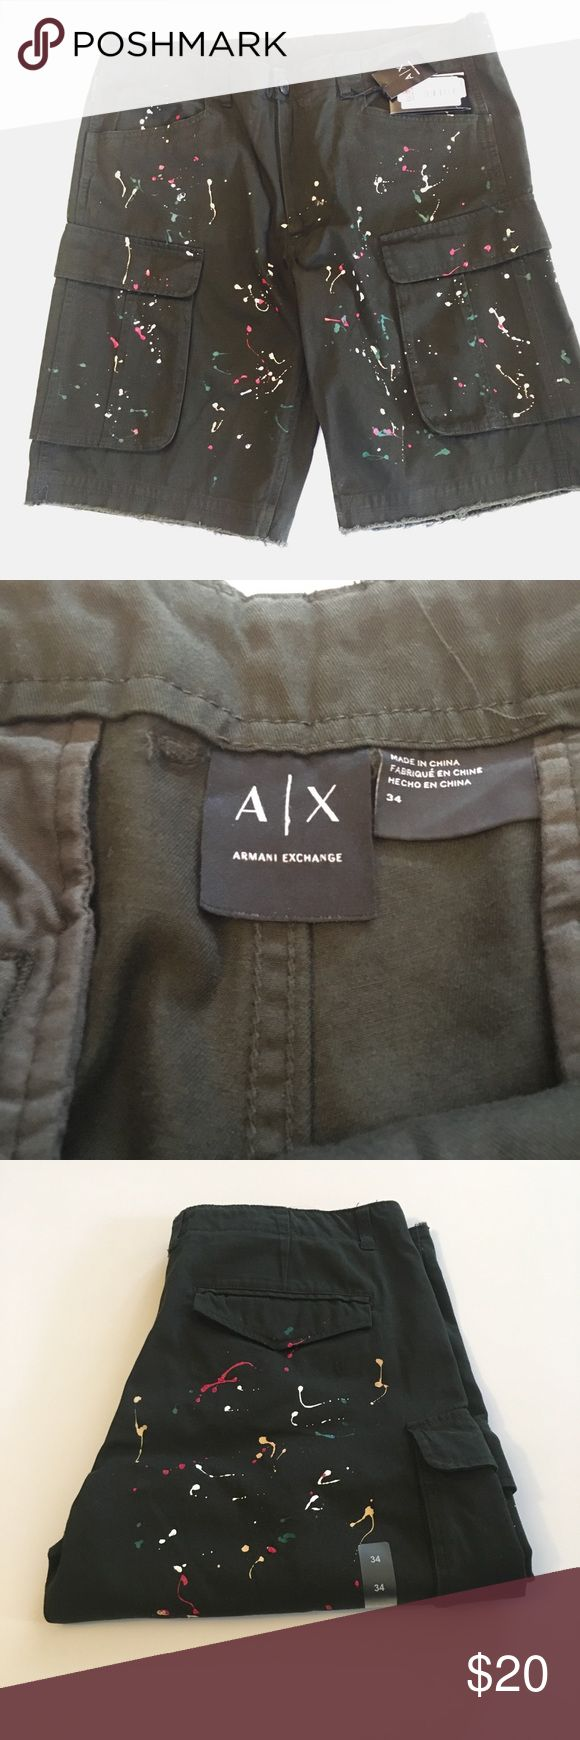 Armani Exchange Paint splatter shorts For you inner artist. brand new with tags cargo shortss A/X Armani Exchange Shorts Cargo